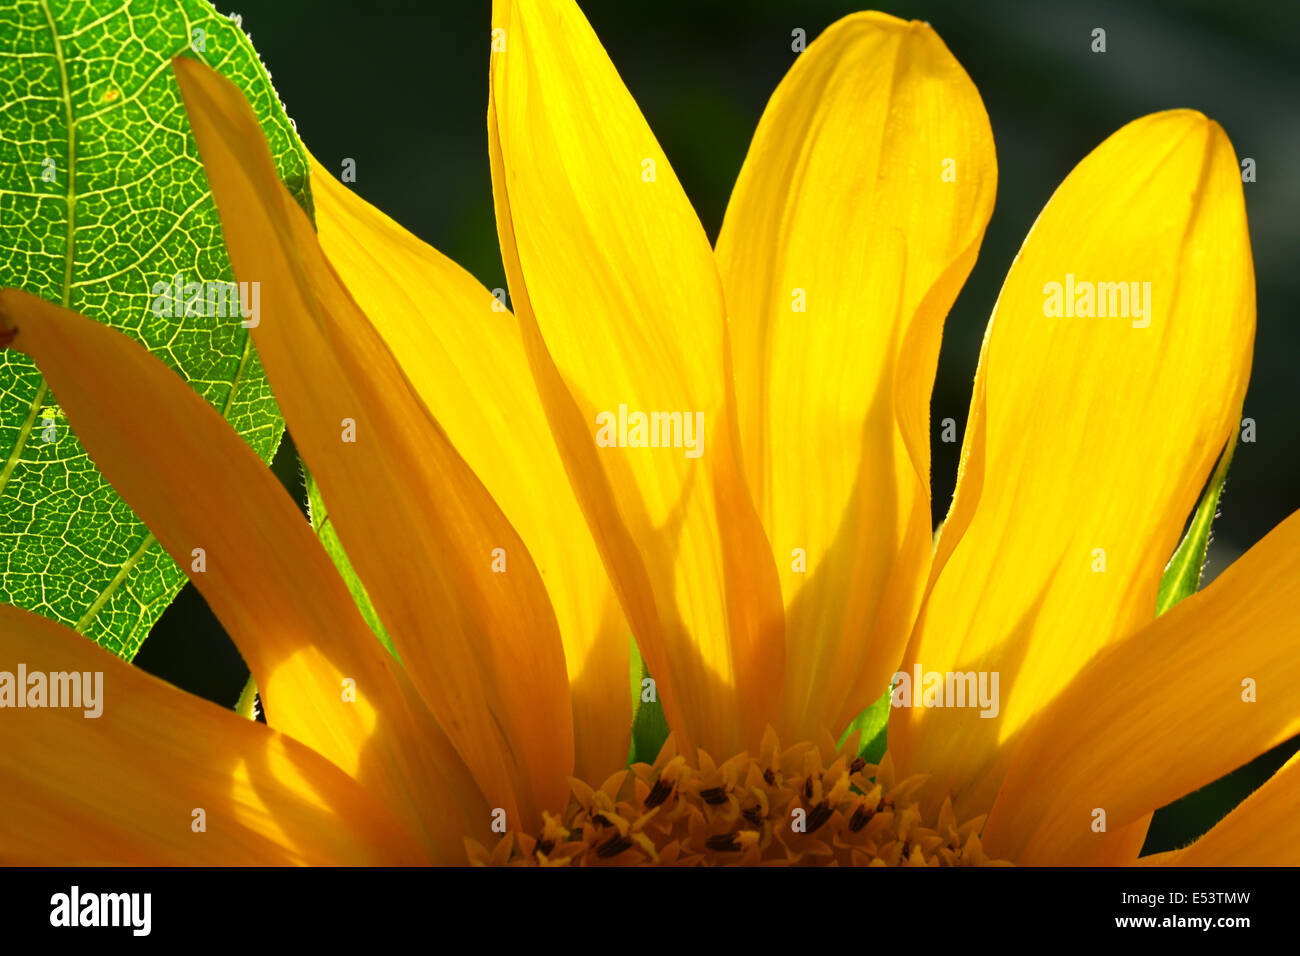 Sunflower petals in close-up - Stock Image